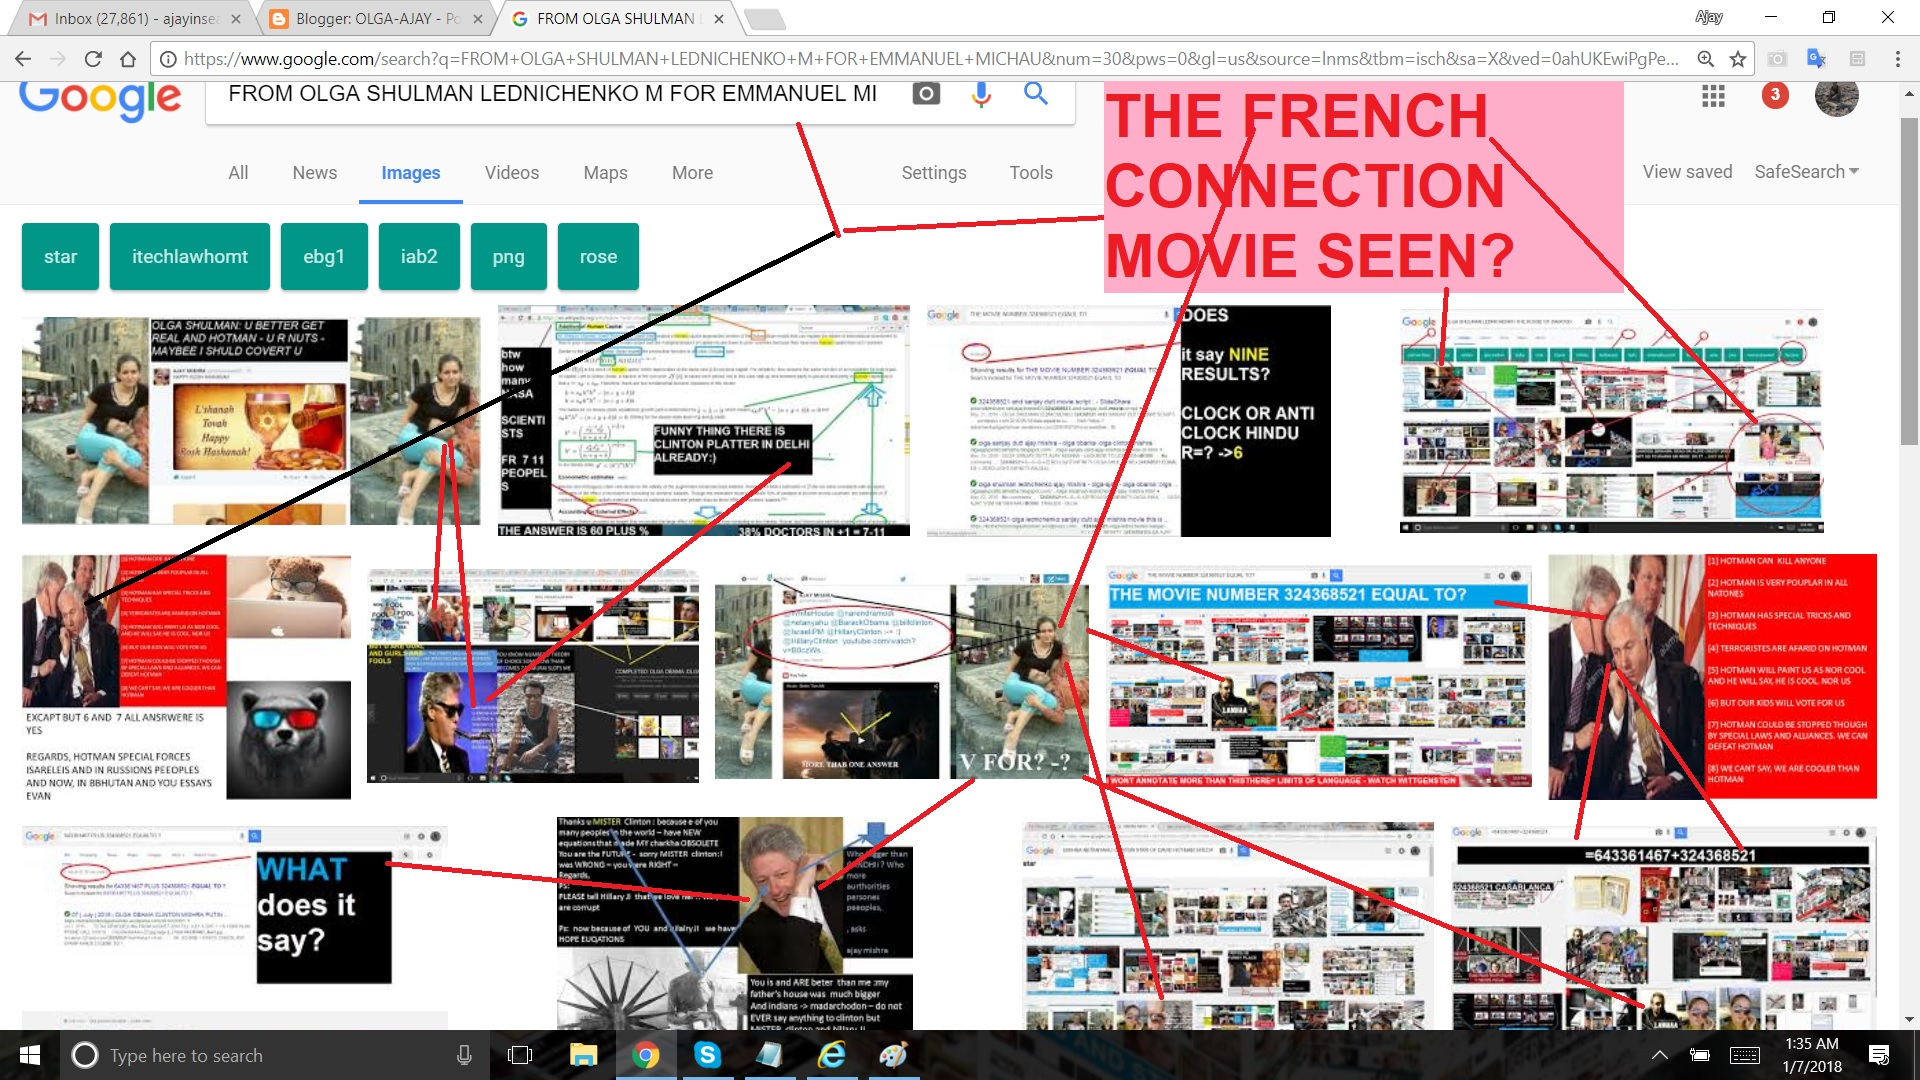 FROM OLGA SHULMAN LEDNICHENKO M FOR EMMANUEL MICHAU. ----SO HERE IS THE FRENCH CONNECTION AND SOME PROCEDURE